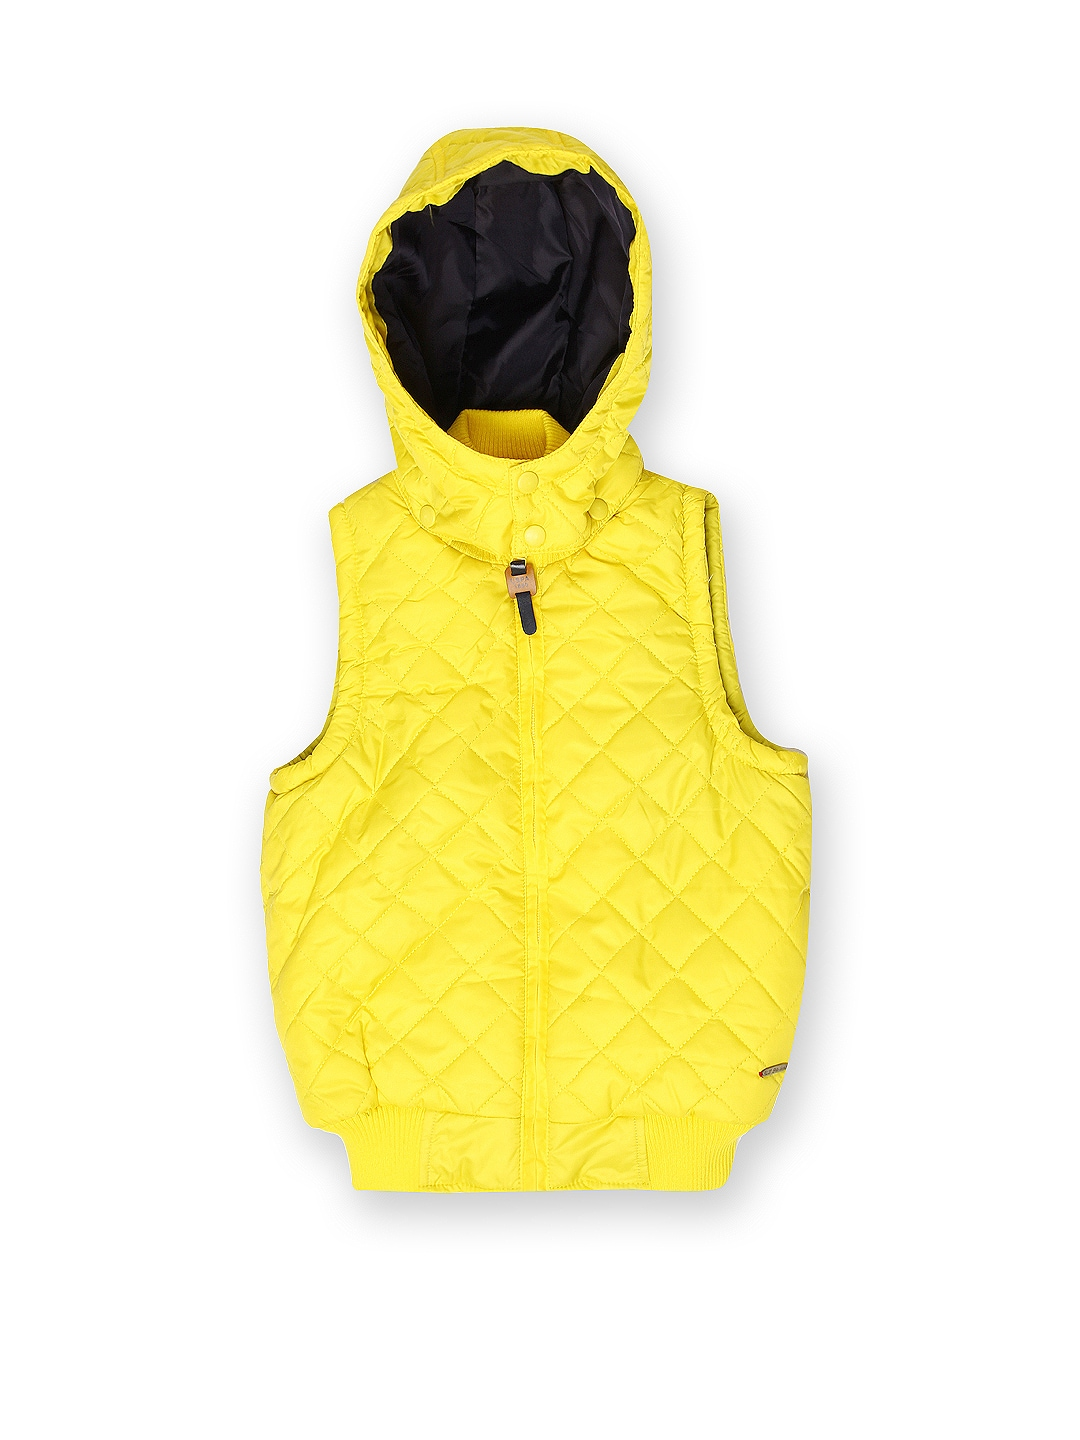 U.S. Polo Assn. Kids Boys Yellow Hooded Jacket